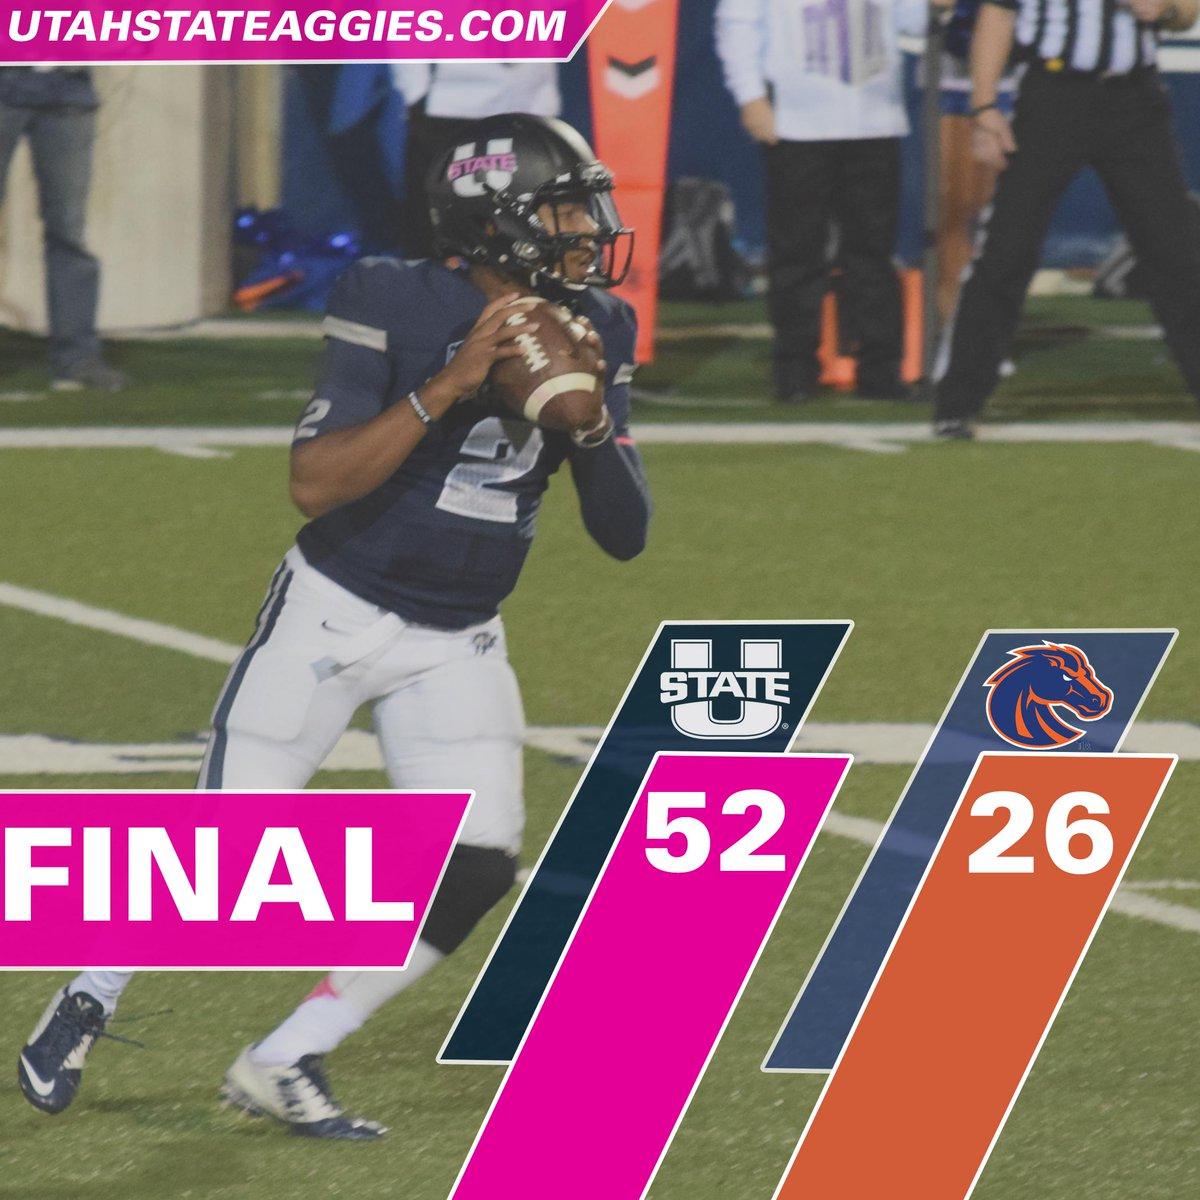 AGGIES WIN!!! @USUFootball beats Boise St. 52-26 to remain unbeaten in the Mountain West! http://t.co/bT2Tz8Nqd1